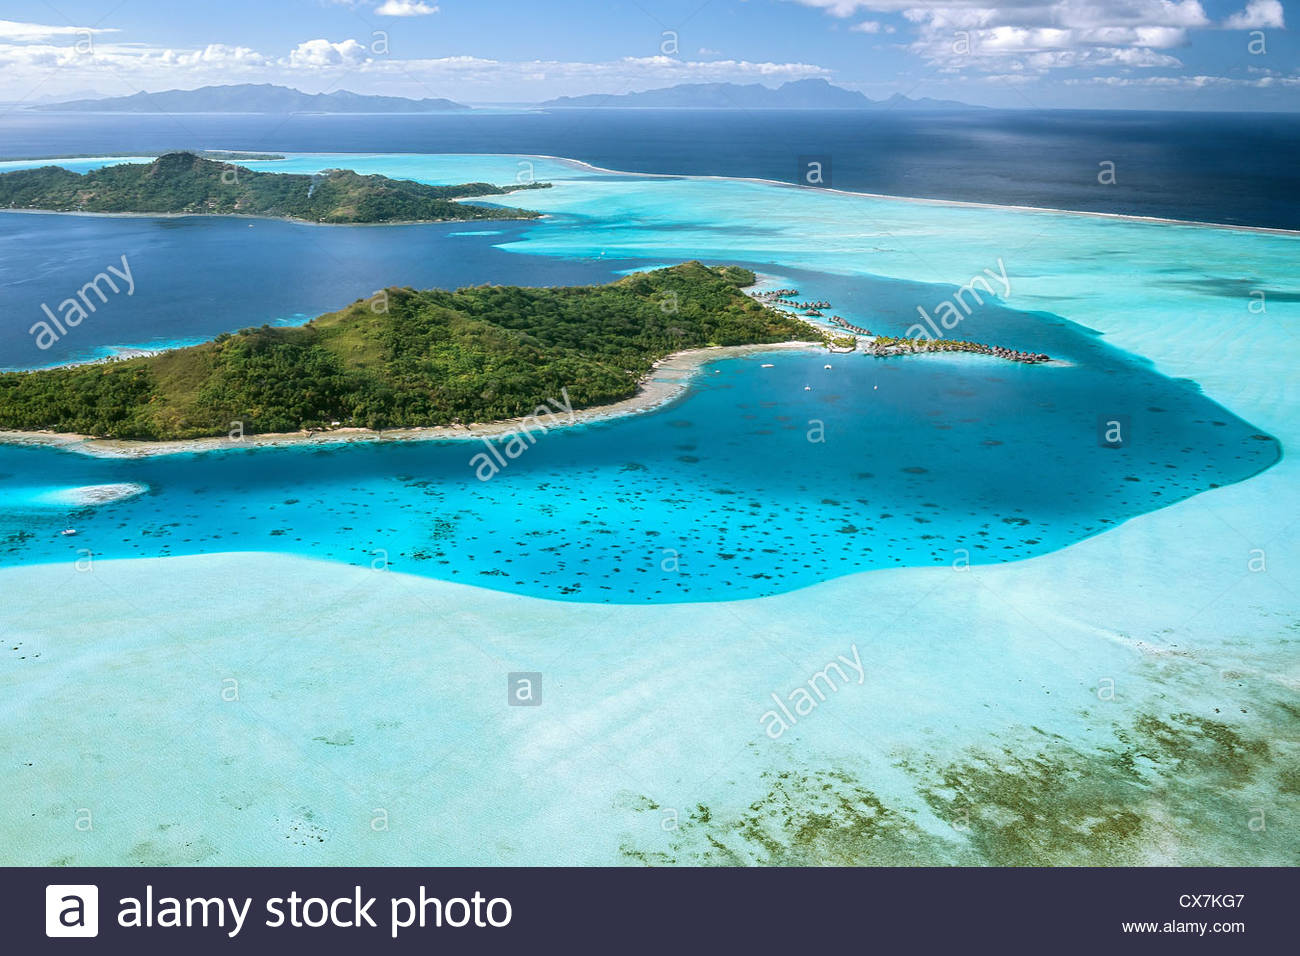 Bora Bora Stock Photo